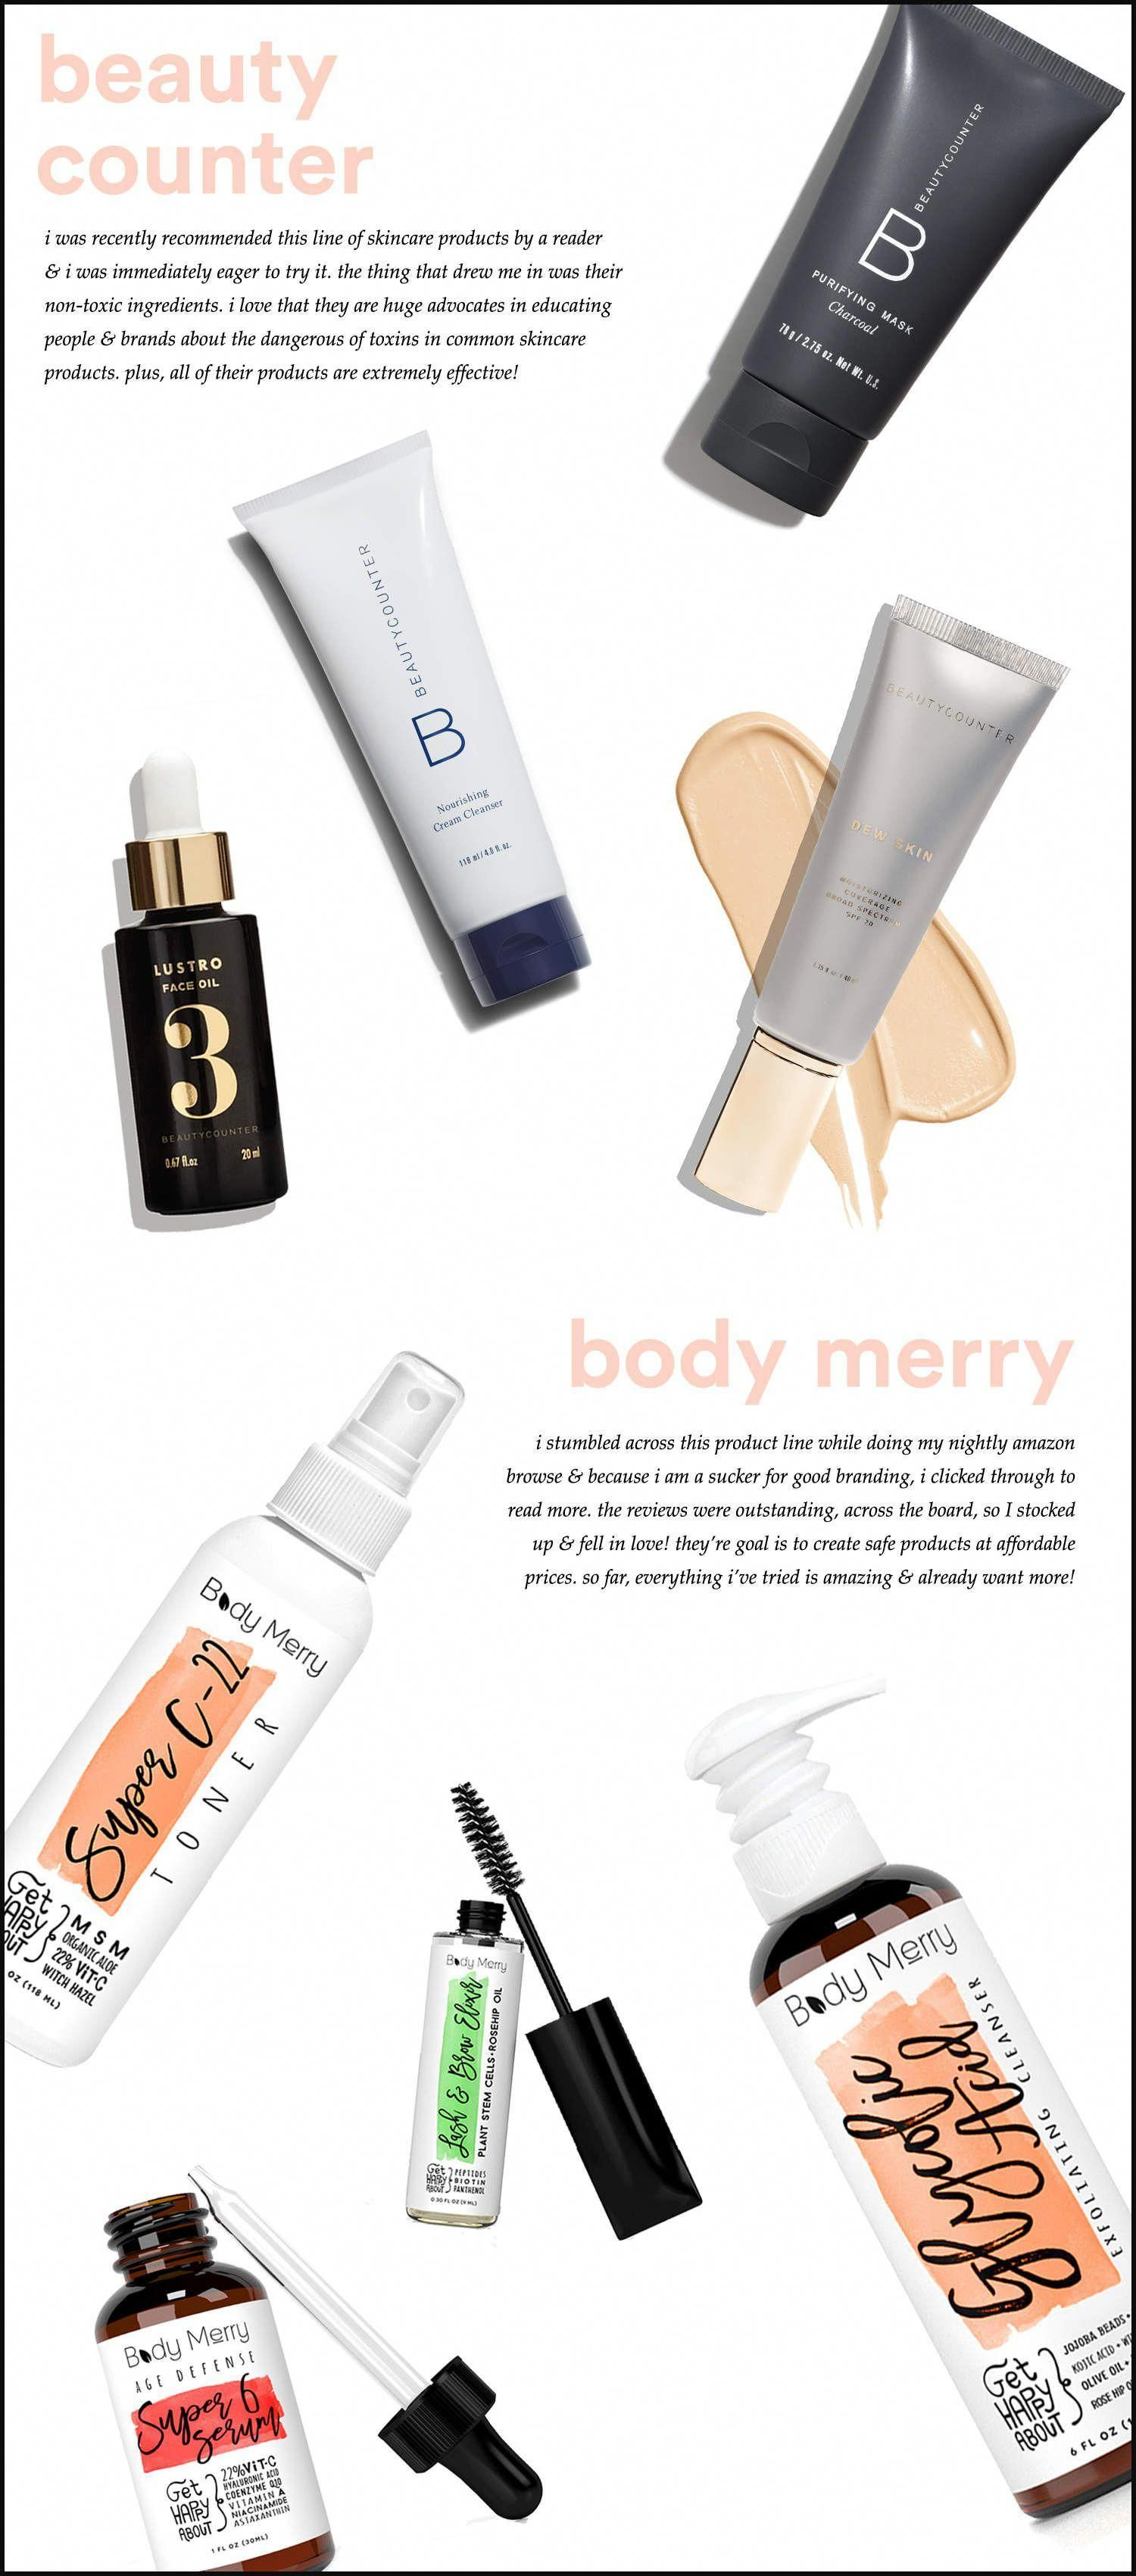 New In NonToxic Skincare Brands I'm Loving cleanbeauty